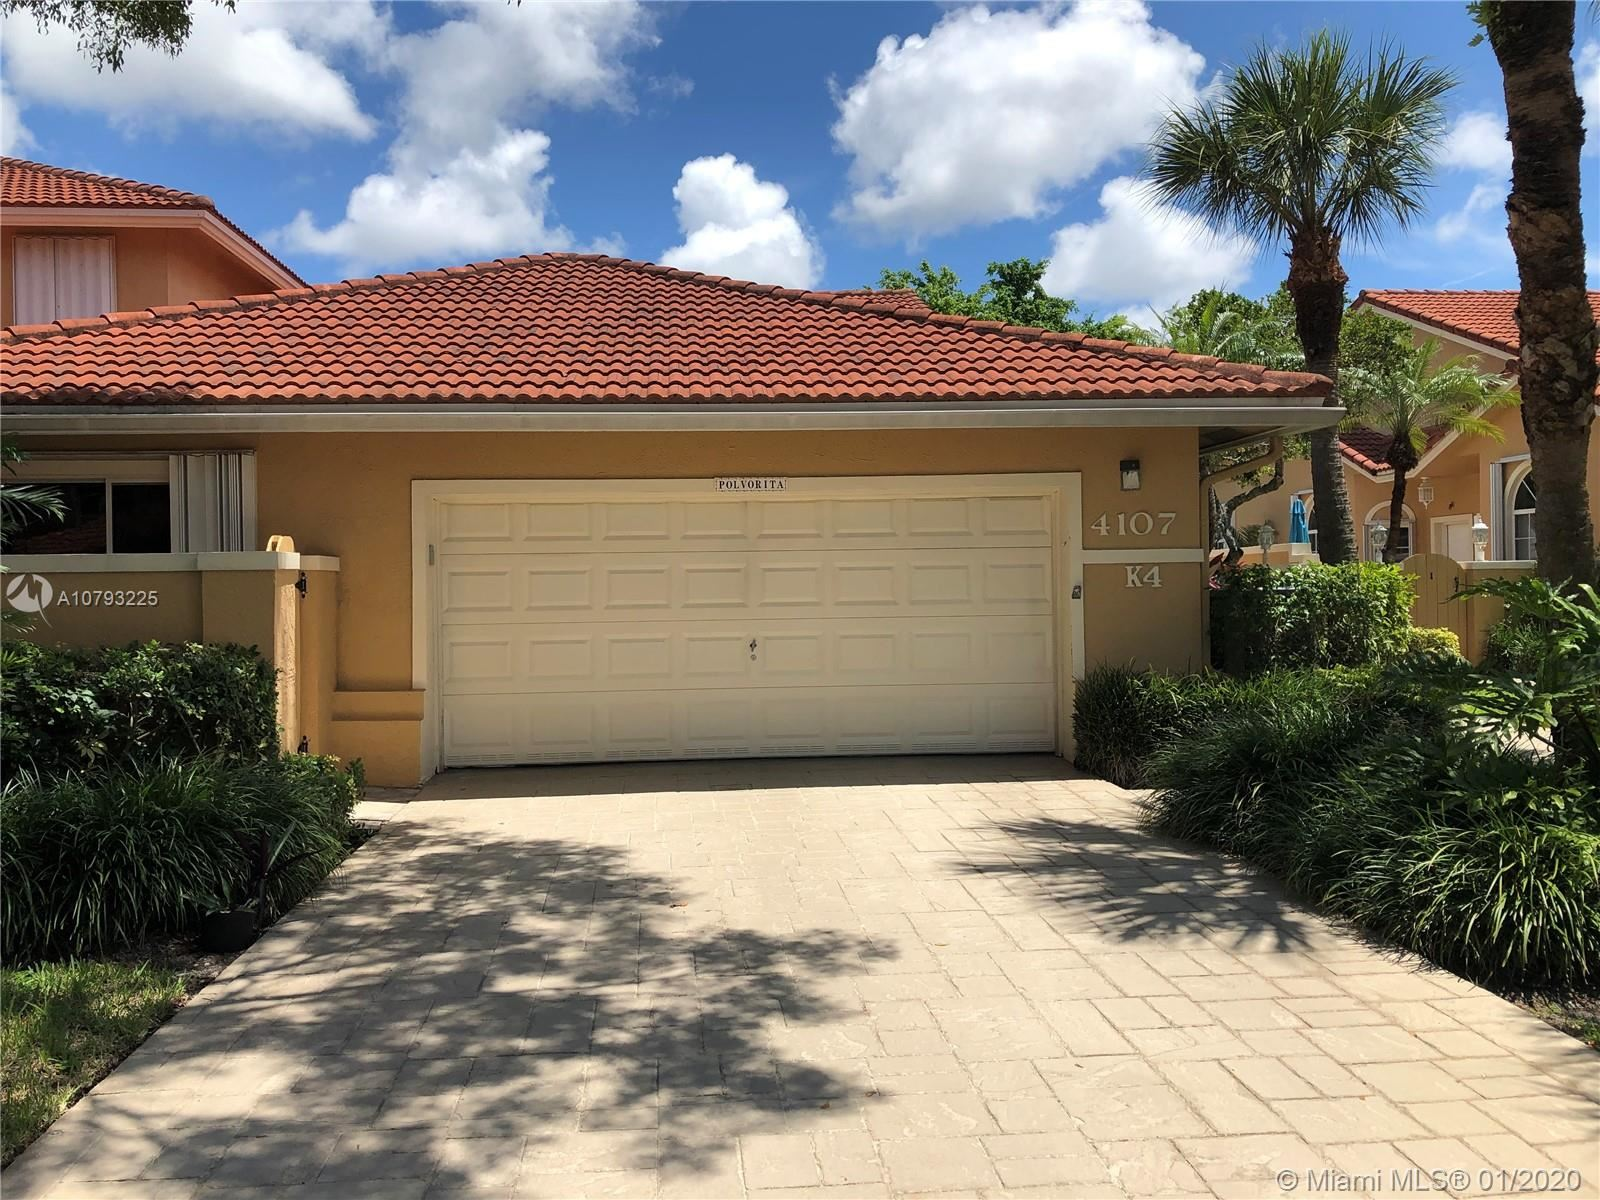 4107 Carriage Dr #4107 K-4, Pompano Beach, FL 33069 - #: A10793225